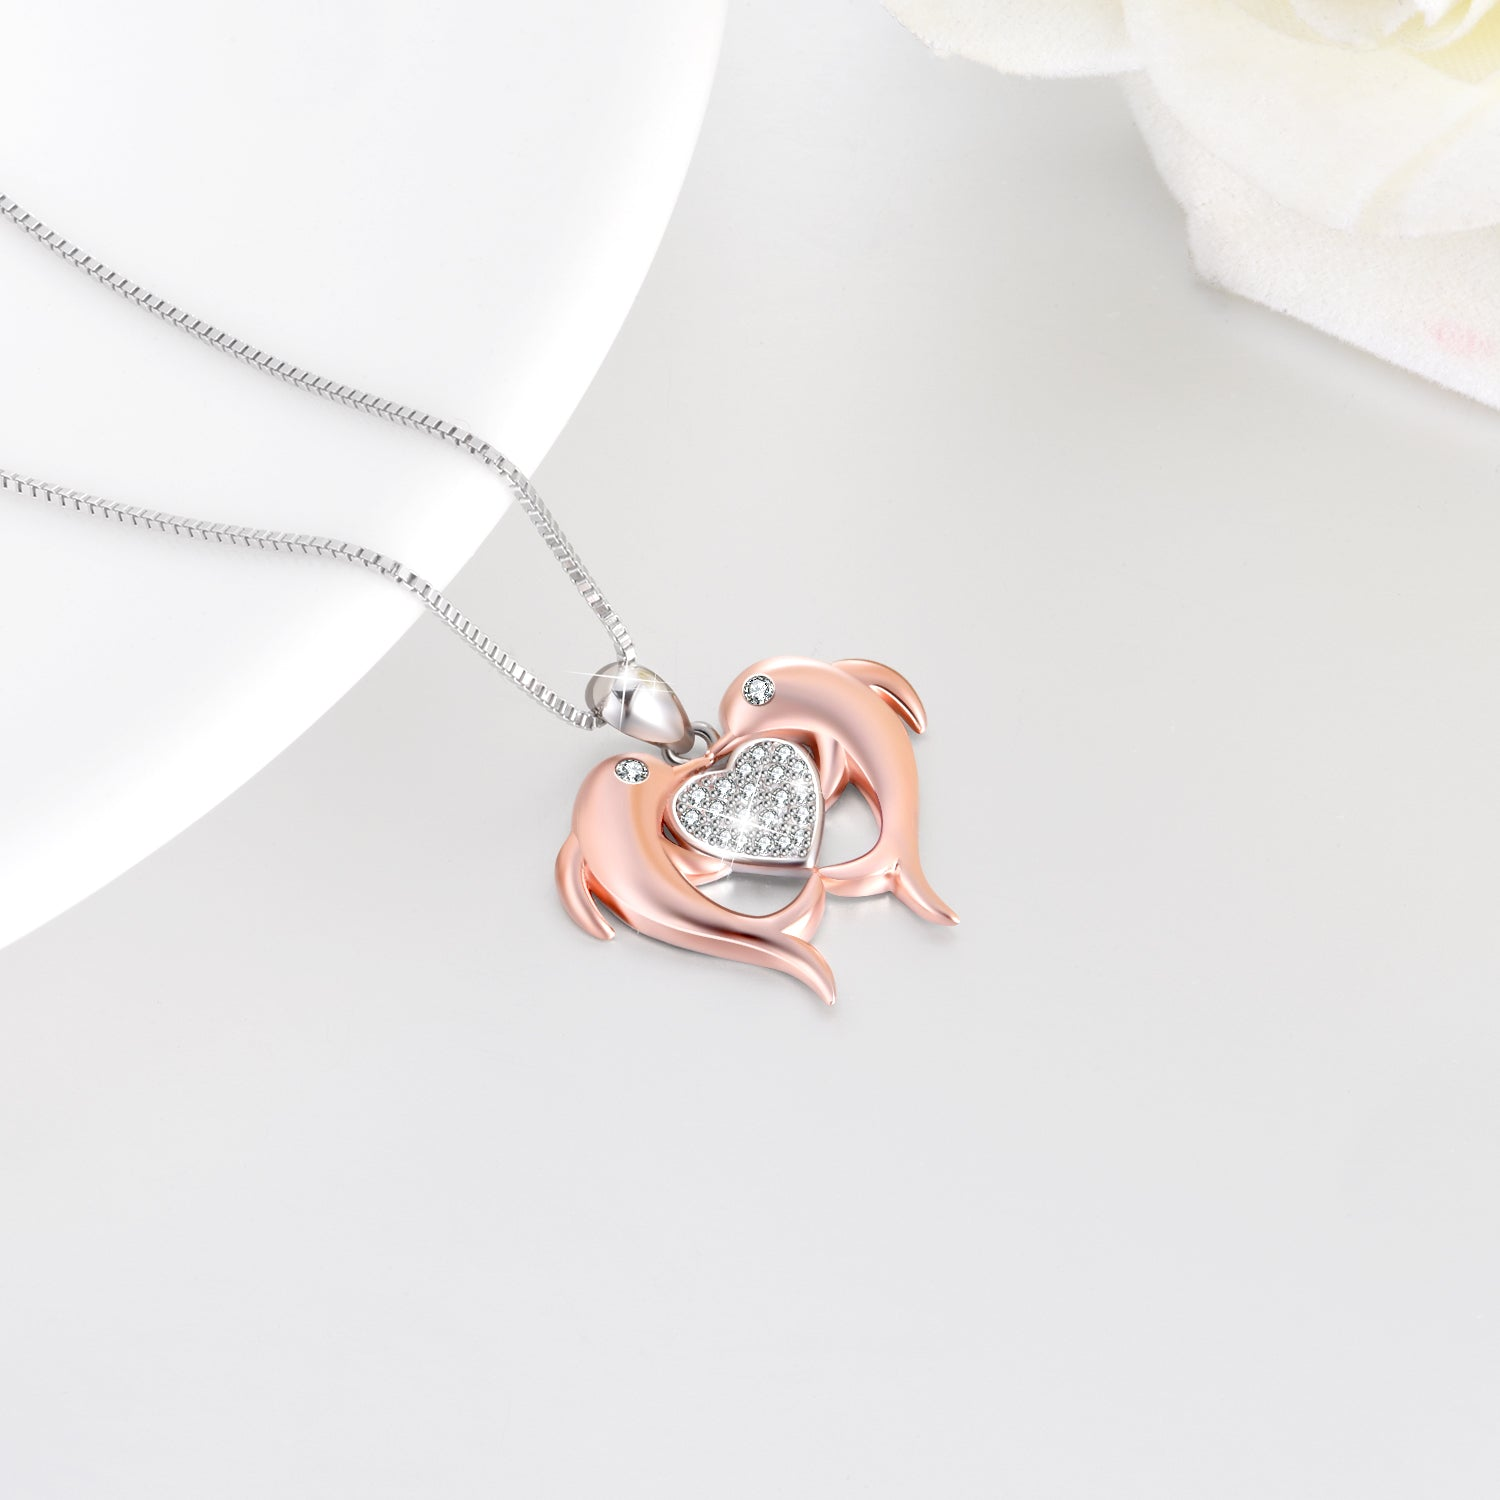 Dolphin Heart Necklace Cute Ocean Animal Human Friends Necklace